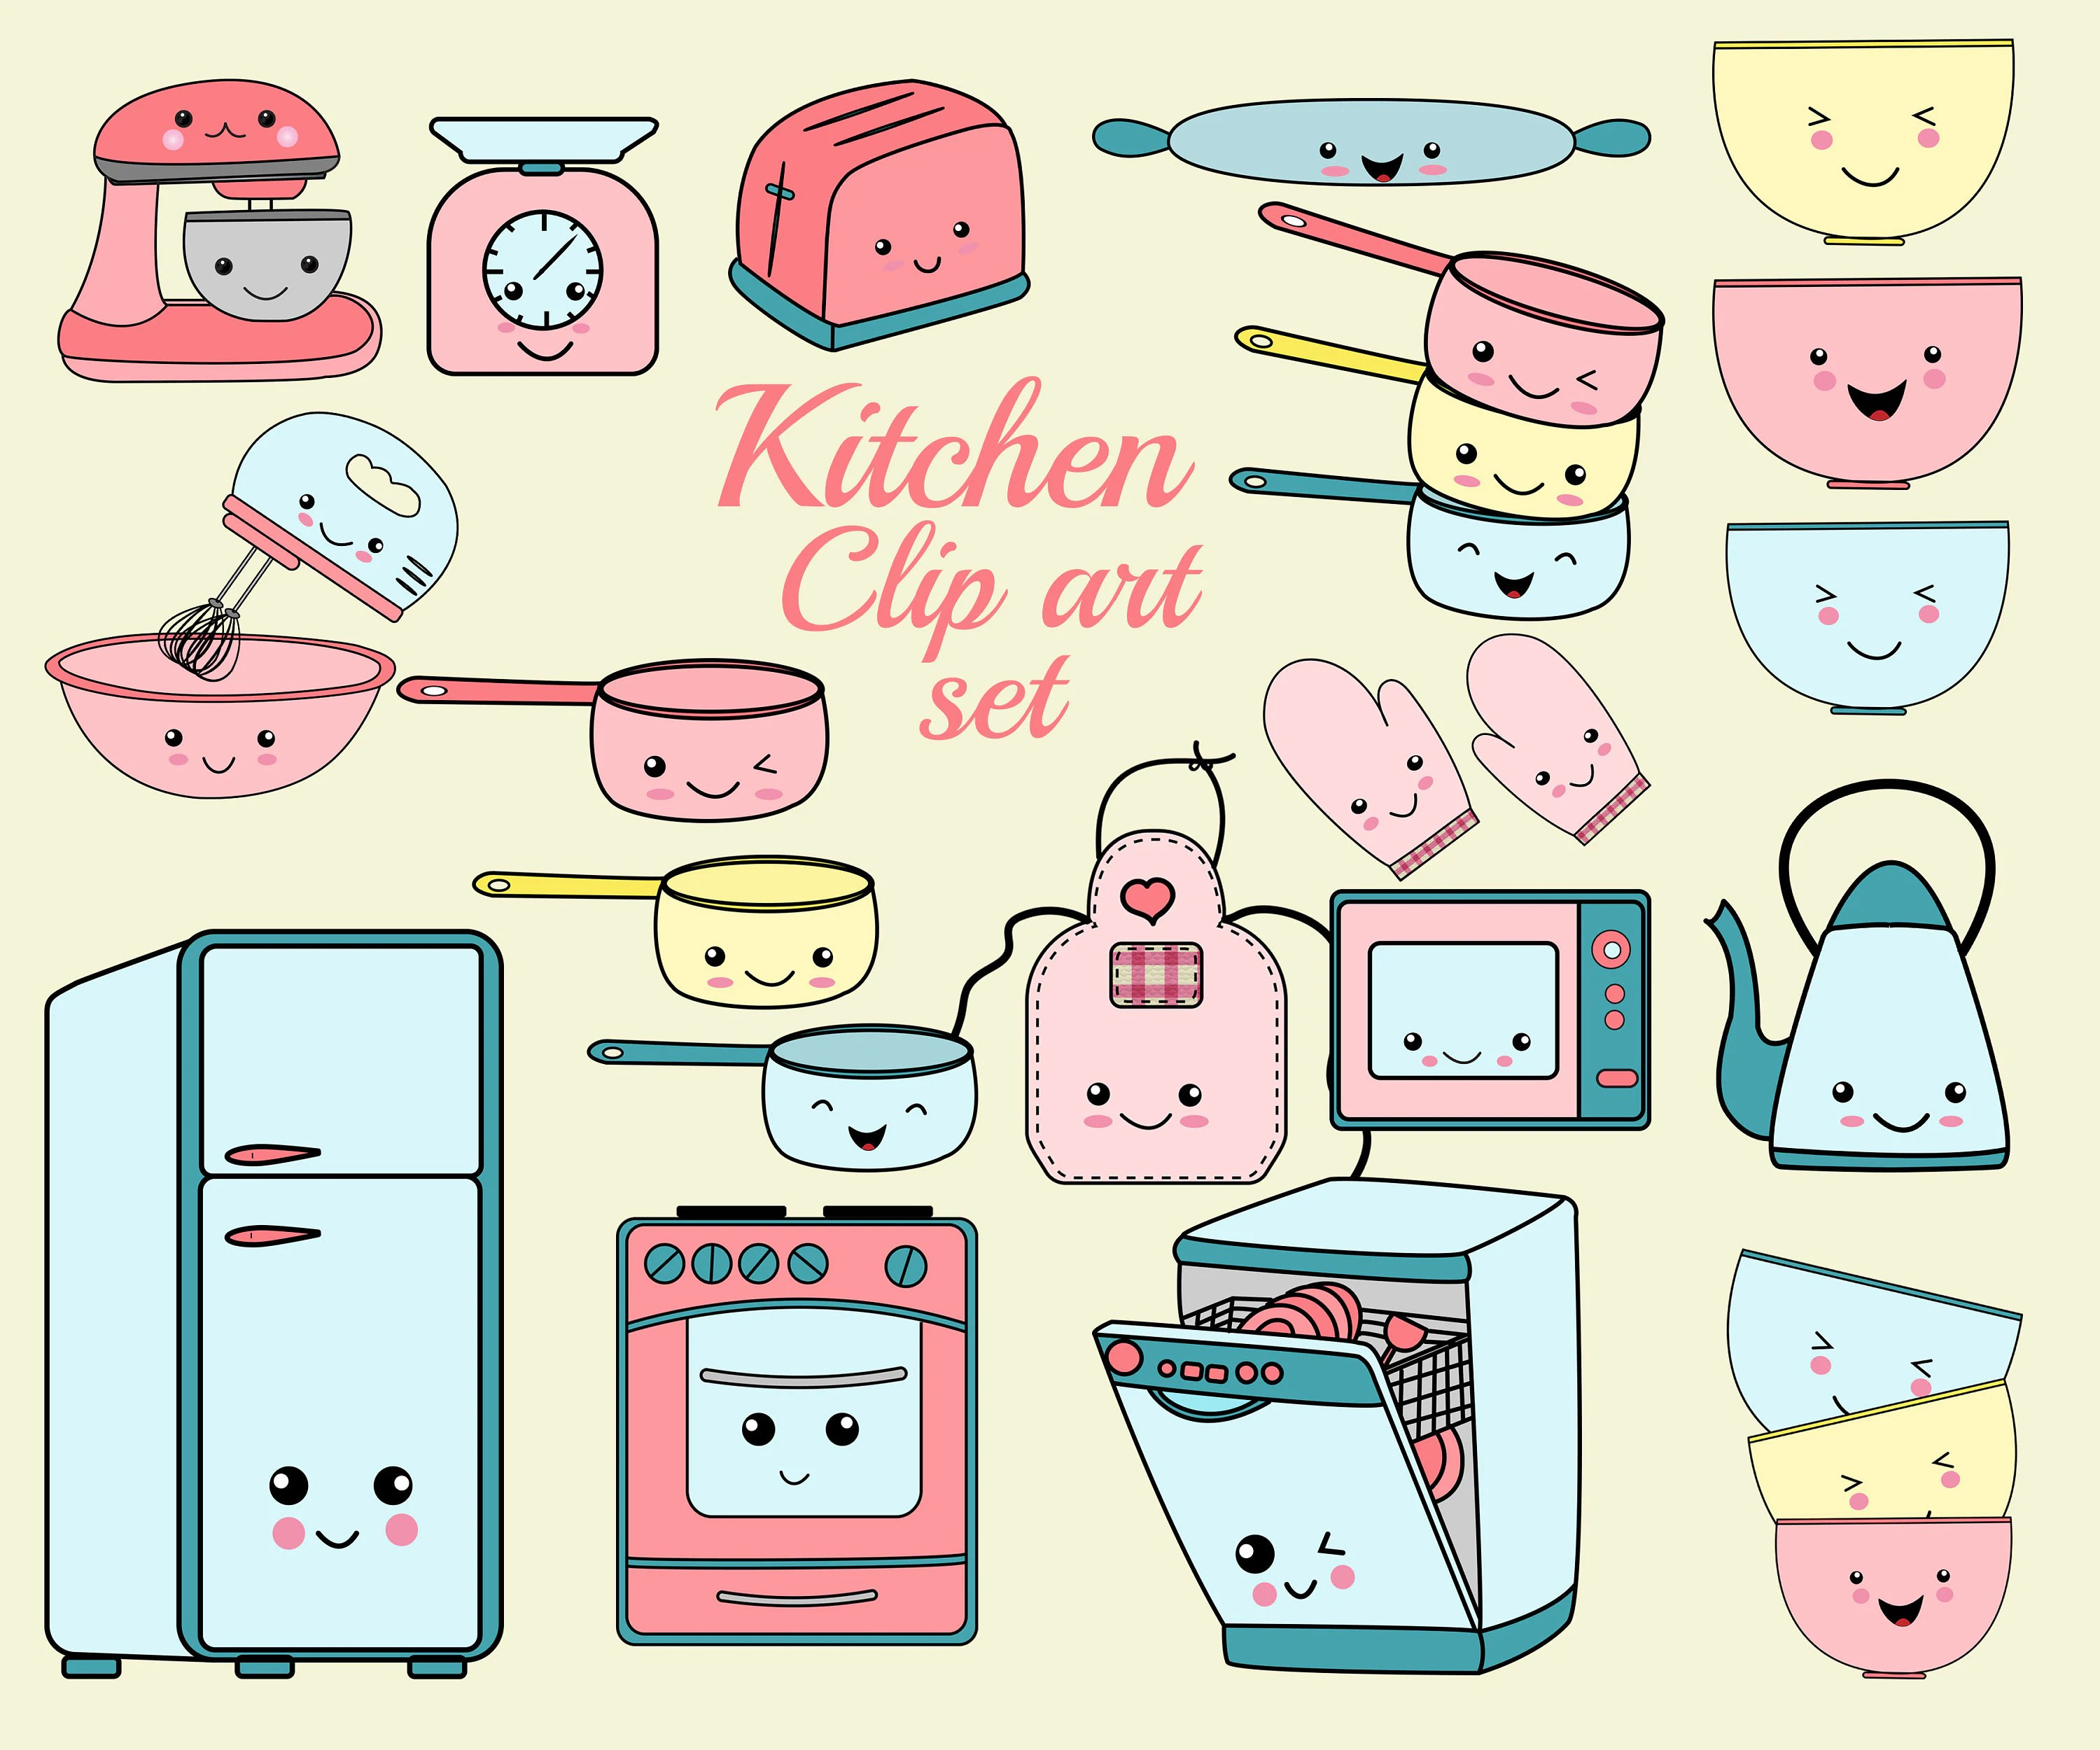 Bilder Küche Clipart Kawaii Kitchen Clip Art Quotkitchen Clipart Set Quot Cooking